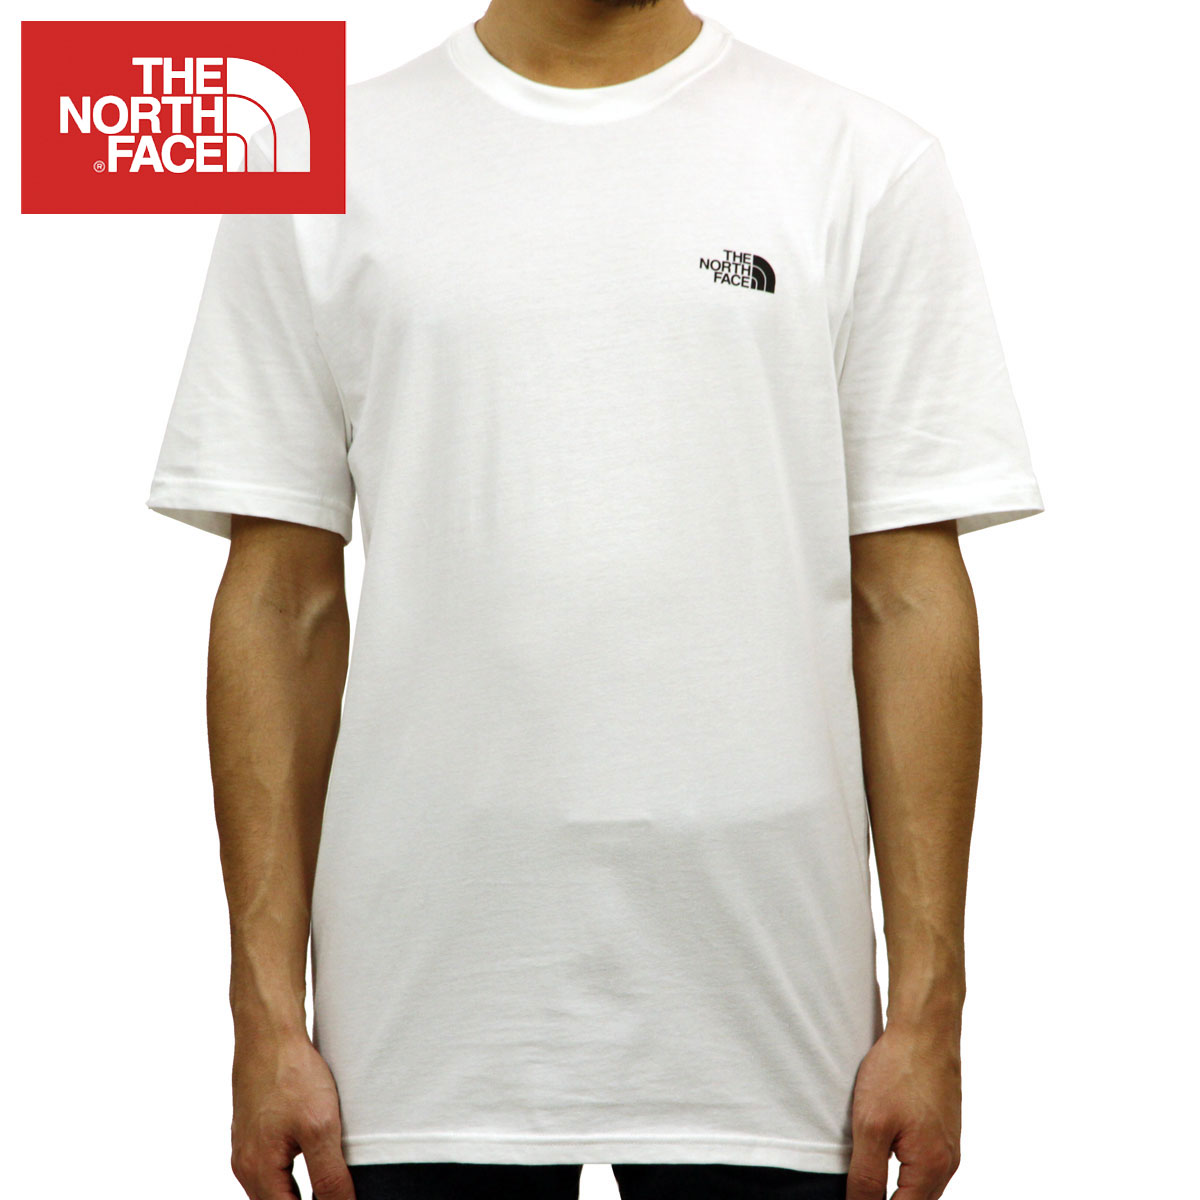 691589ca2 North Face THE NORTH FACE regular article men crew neck short sleeves  T-shirt TNF THROWBACK TEE RTO WHITE